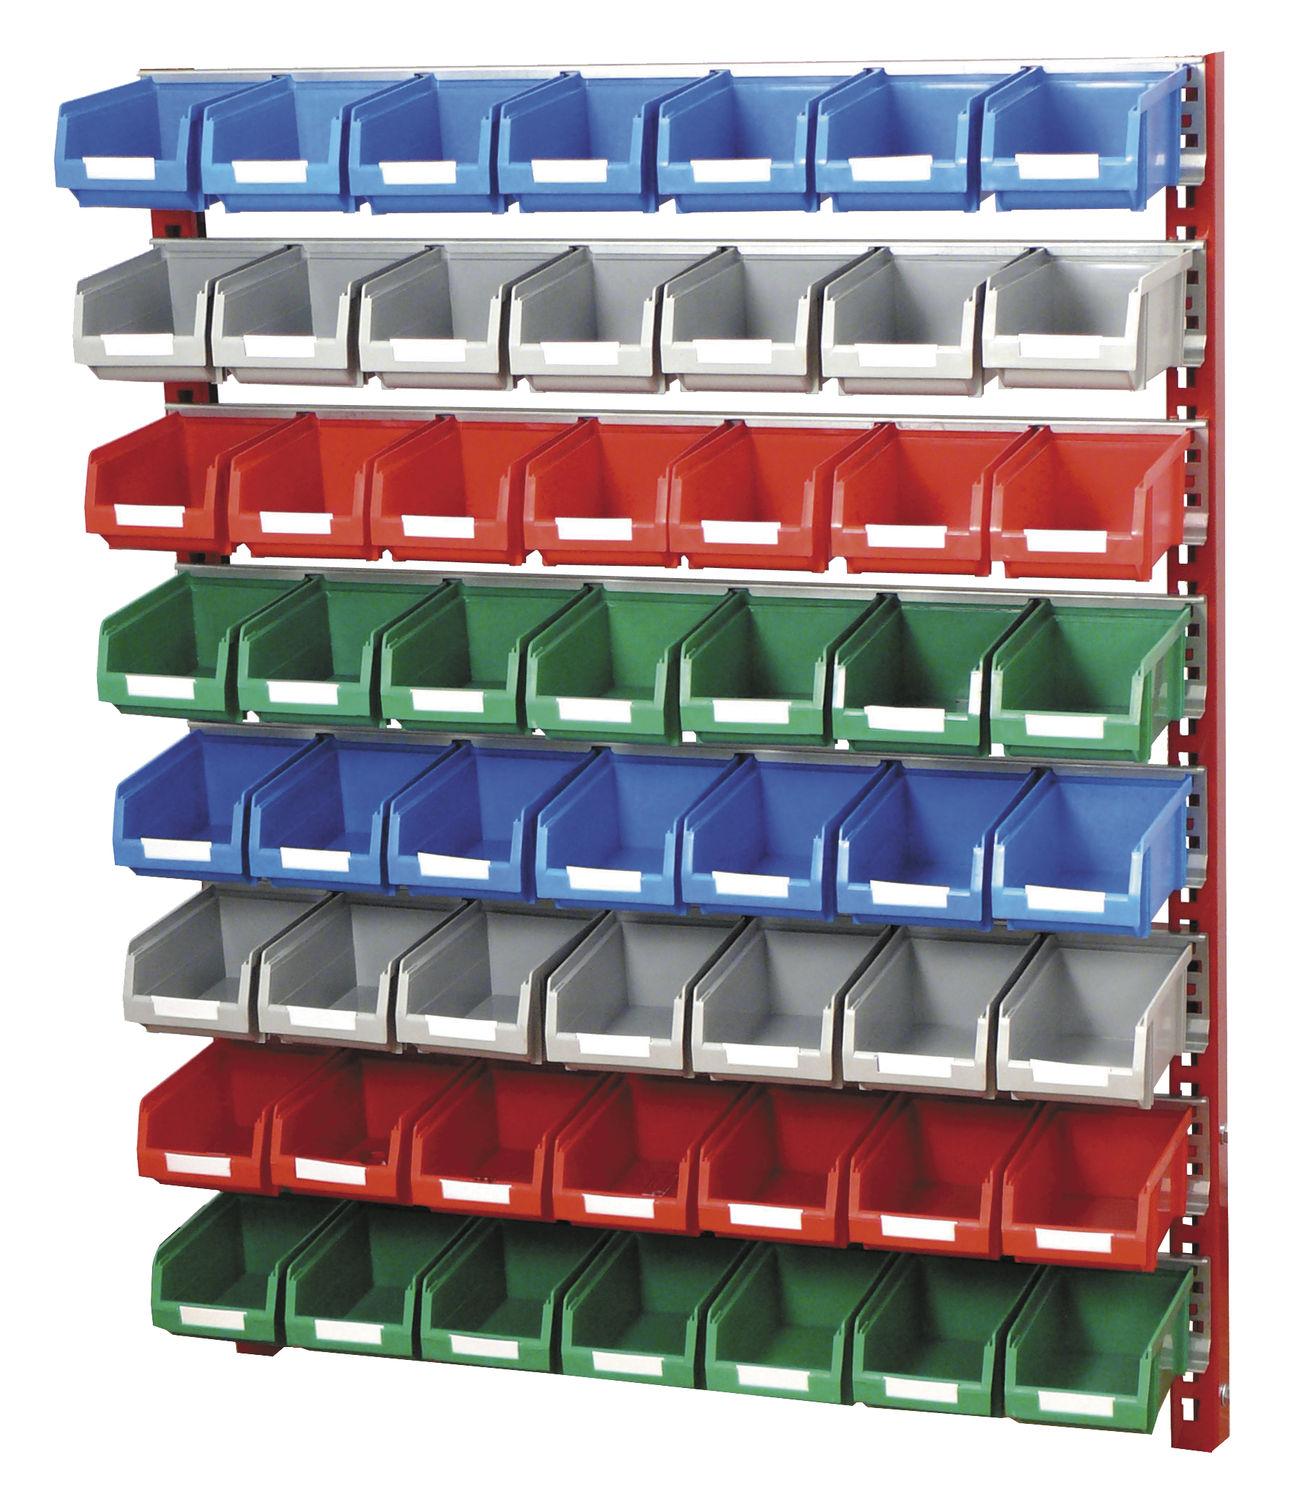 Incroyable Wall Mounted For Storage Bins Stand   785 X 310 X 1000 Mm | PR 10/4